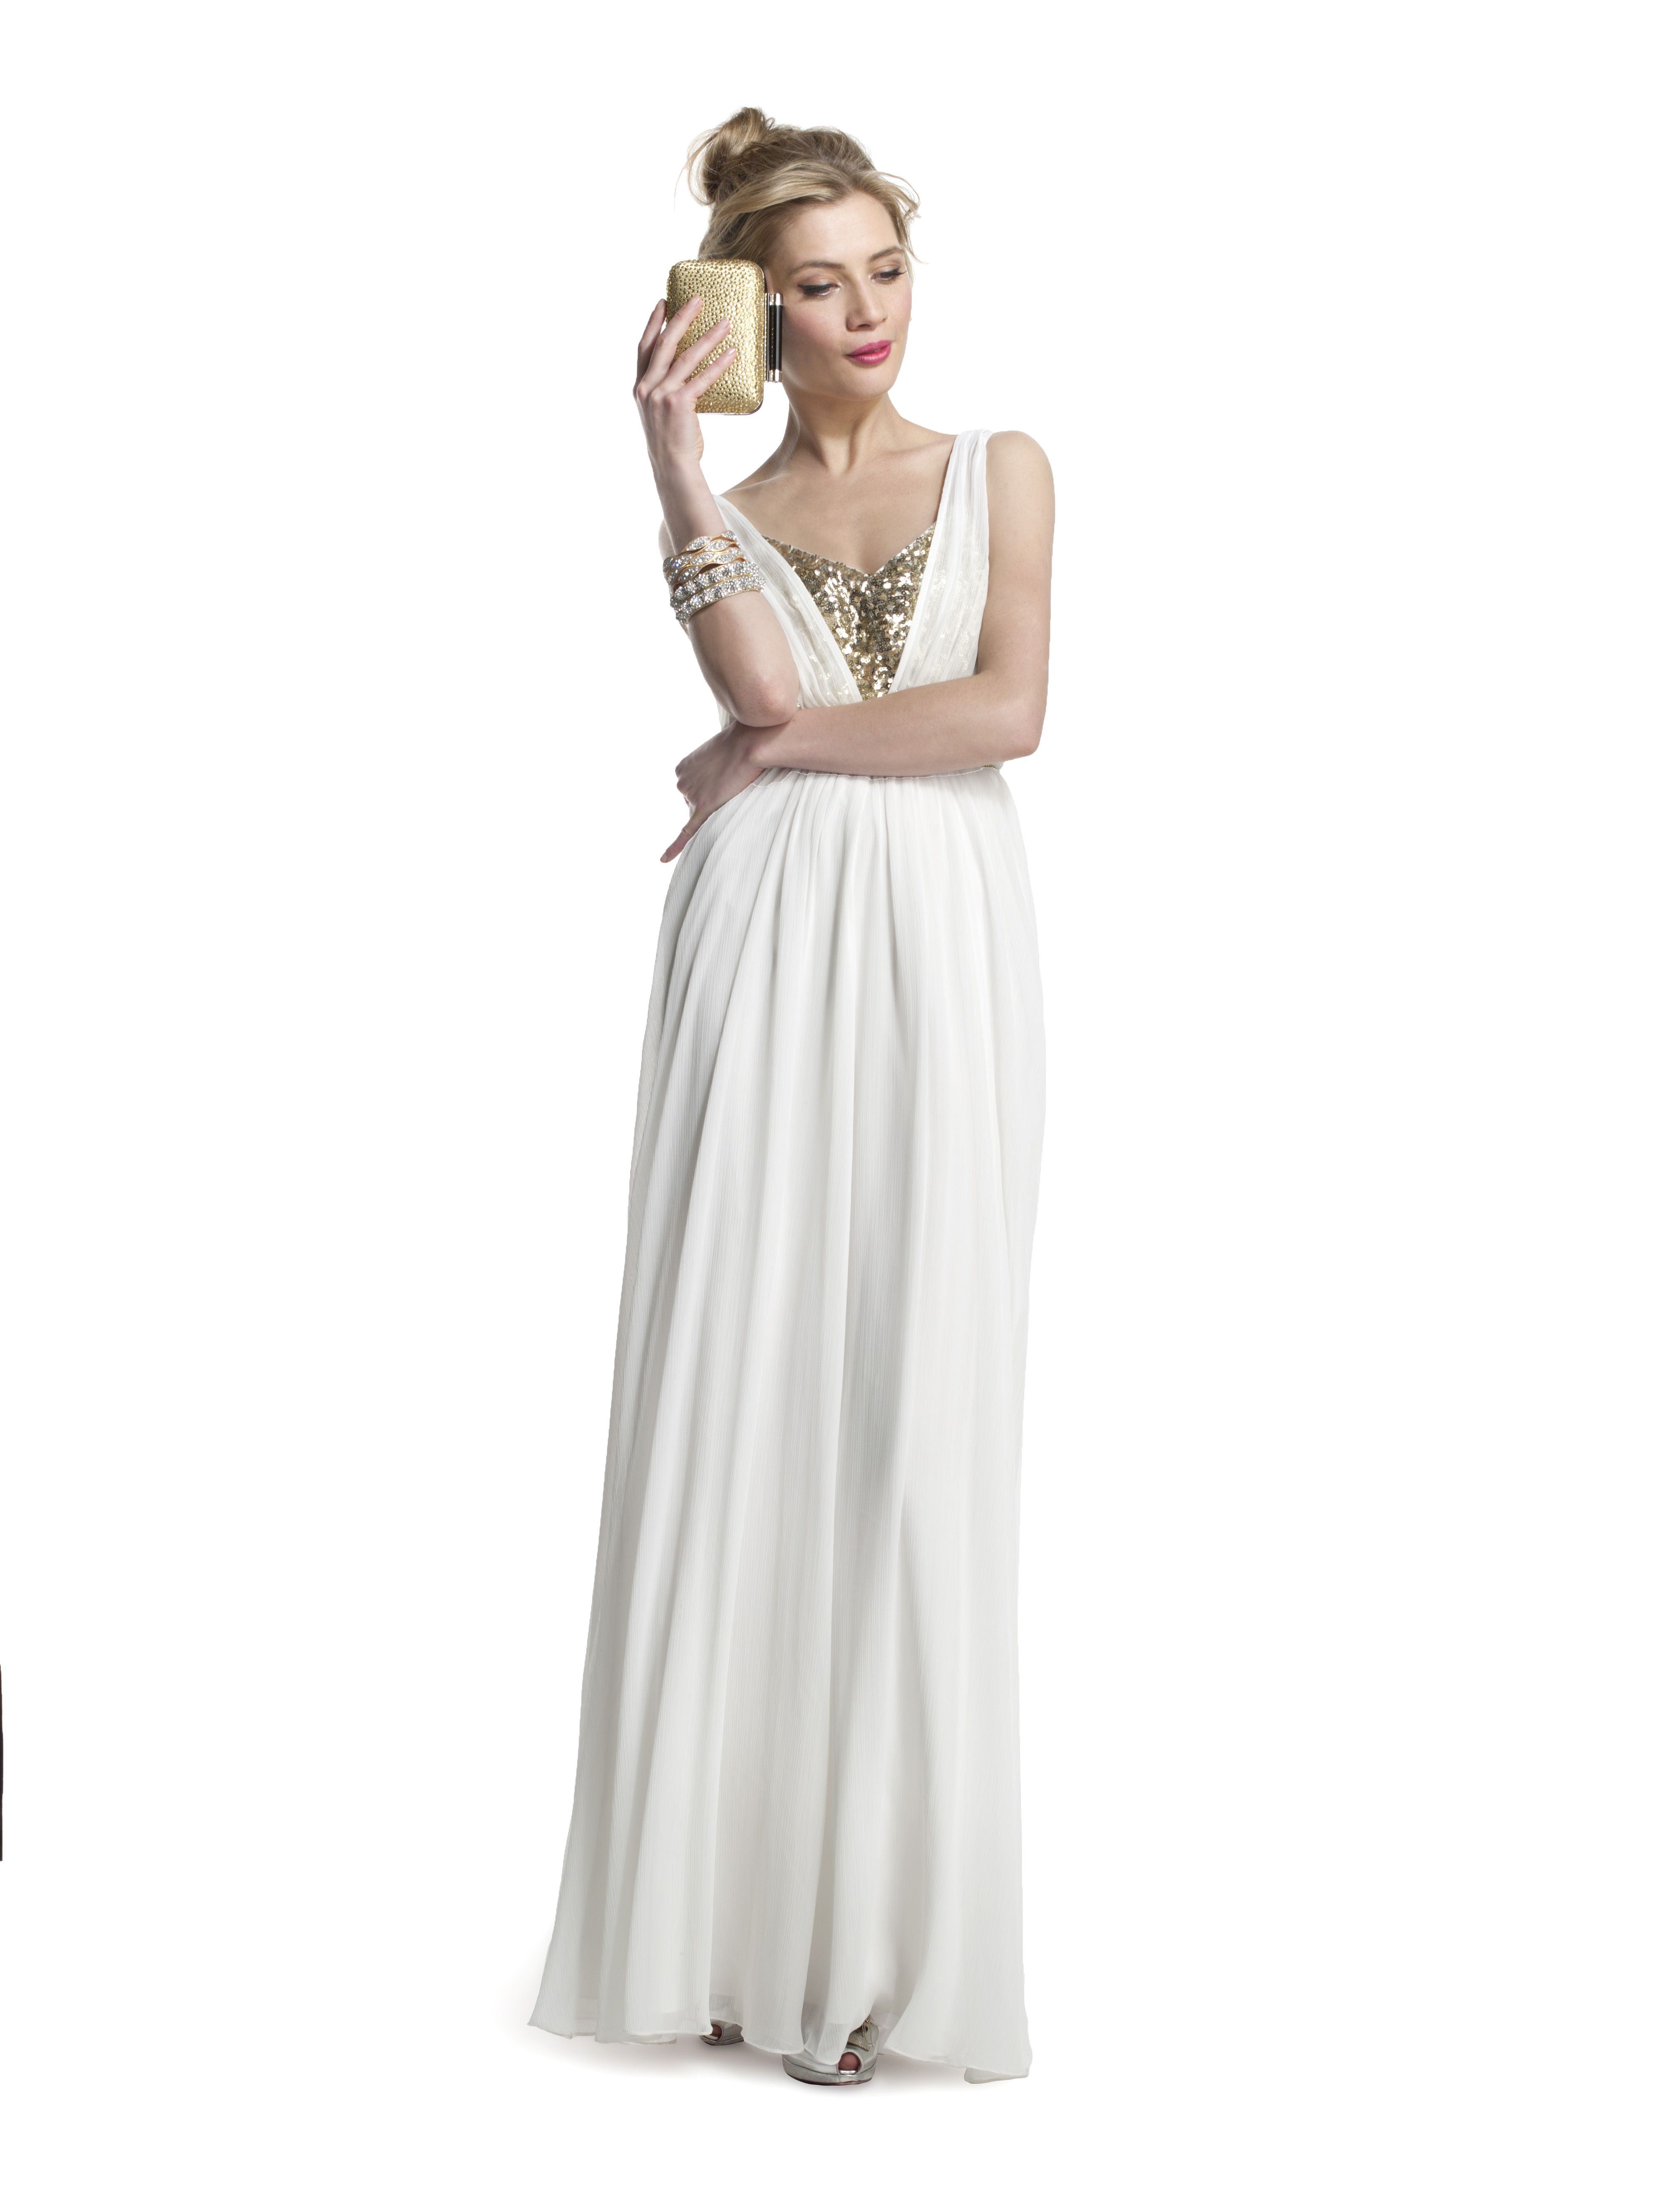 Loving this #WhiteHot gown from #Badgley for prom. Browse all styles here: http://www.renttherunway.com/all/occasions/prom